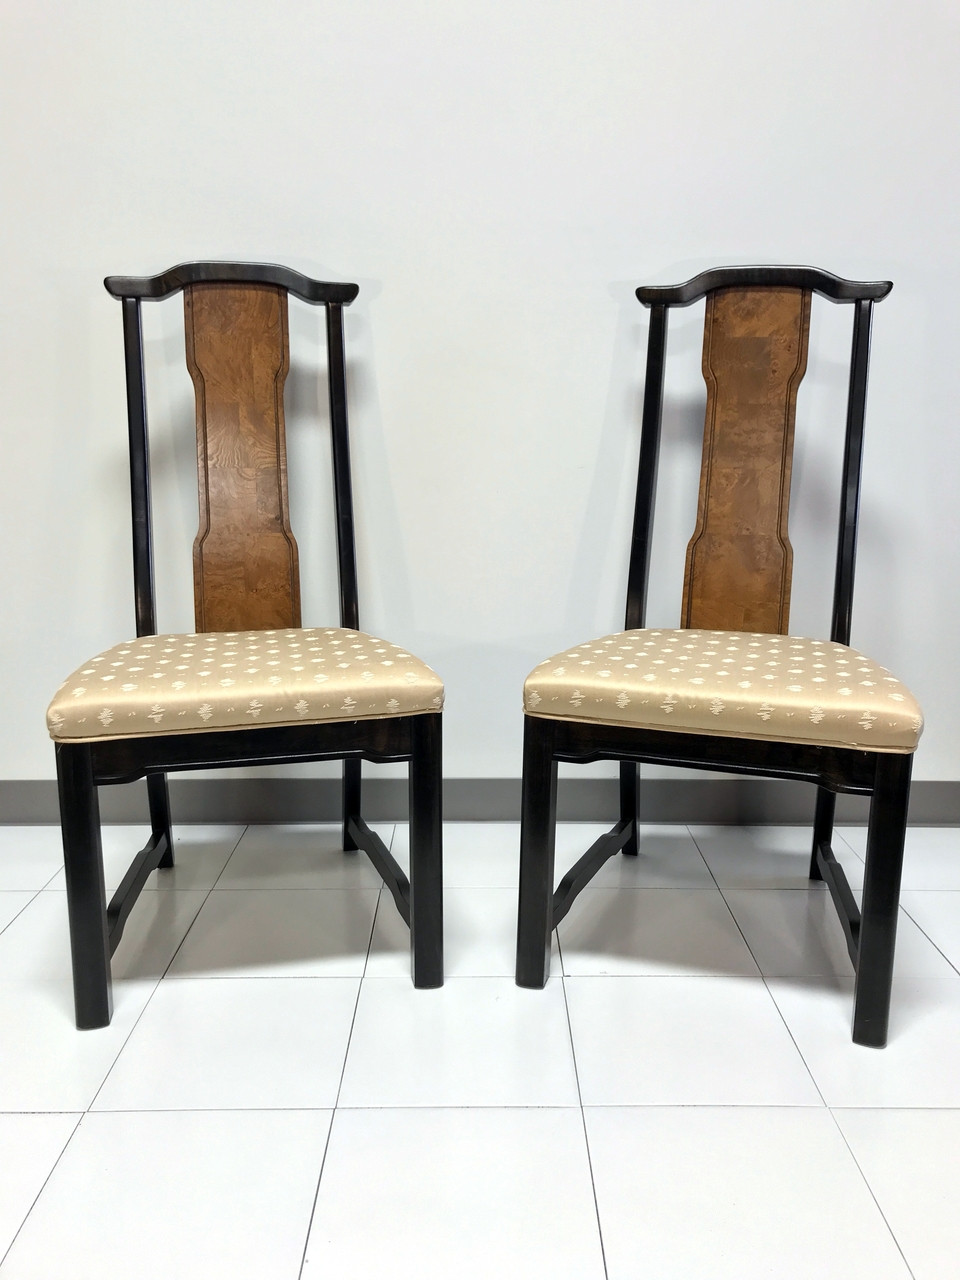 Charmant Broyhill Premier Ming Collection Vintage Asian Chinoiserie Dining Side  Chairs   Pair 3